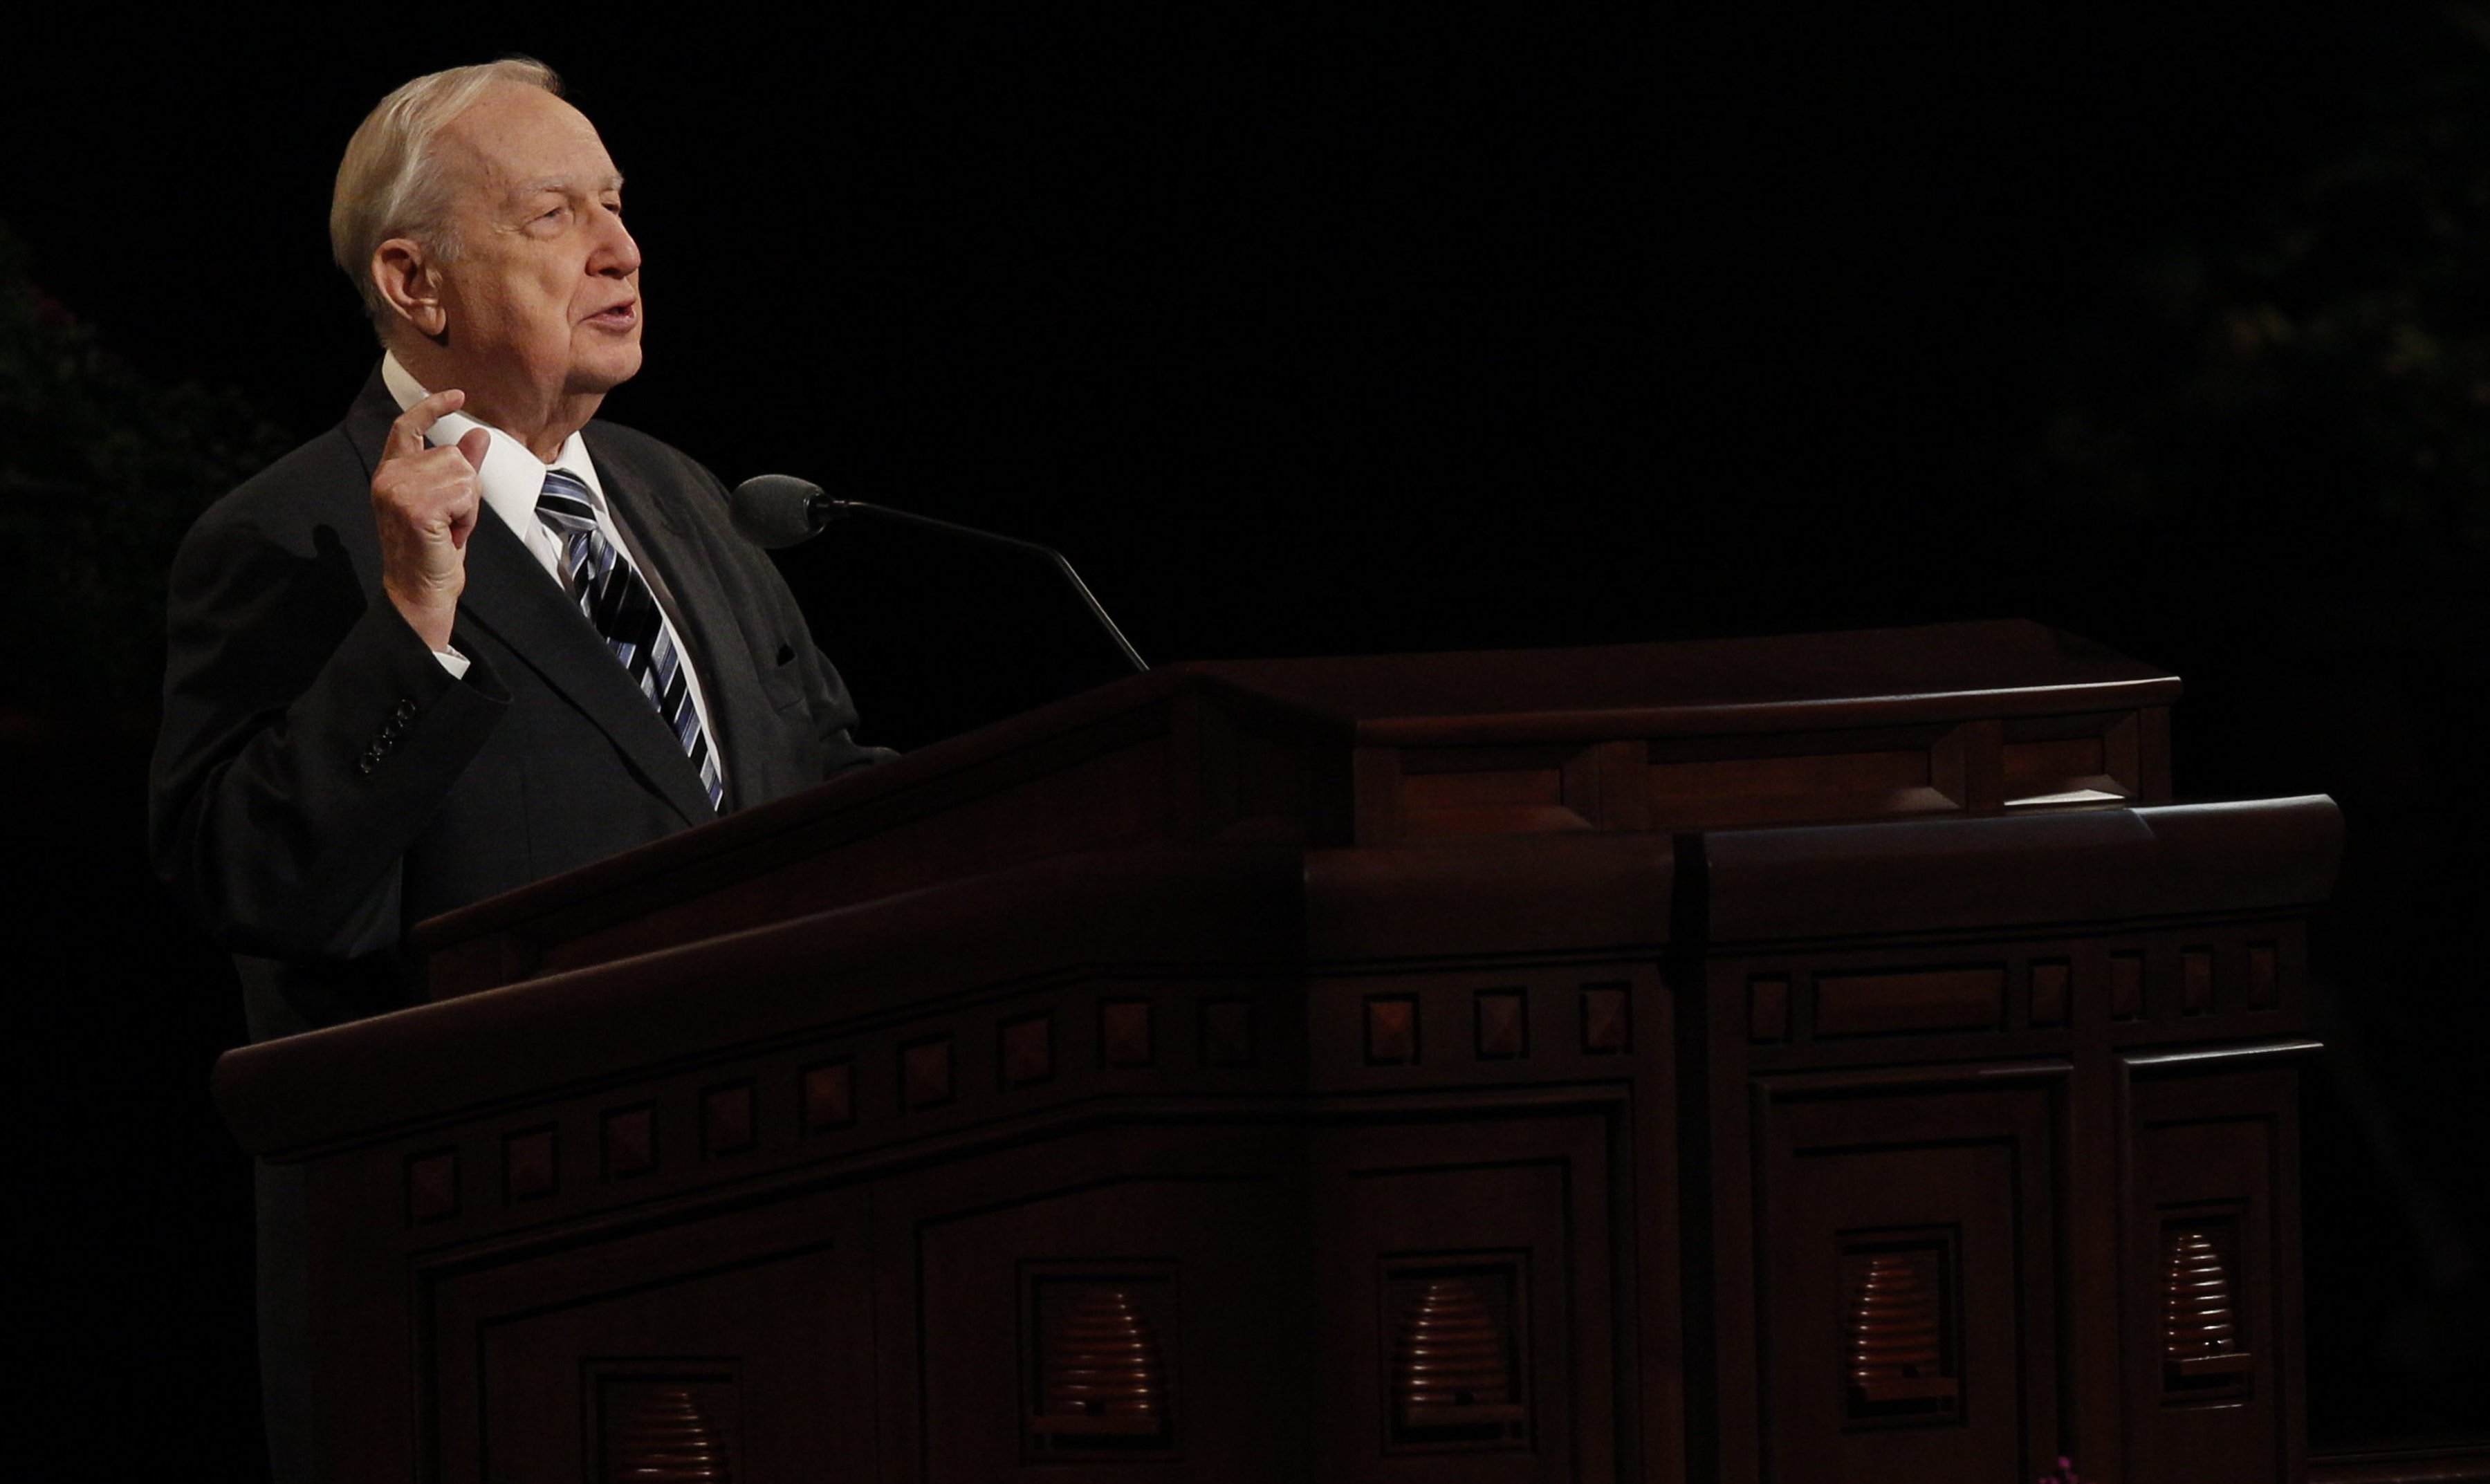 Beloved Mormon Apostle Richard G. Scott Passes Away at 86